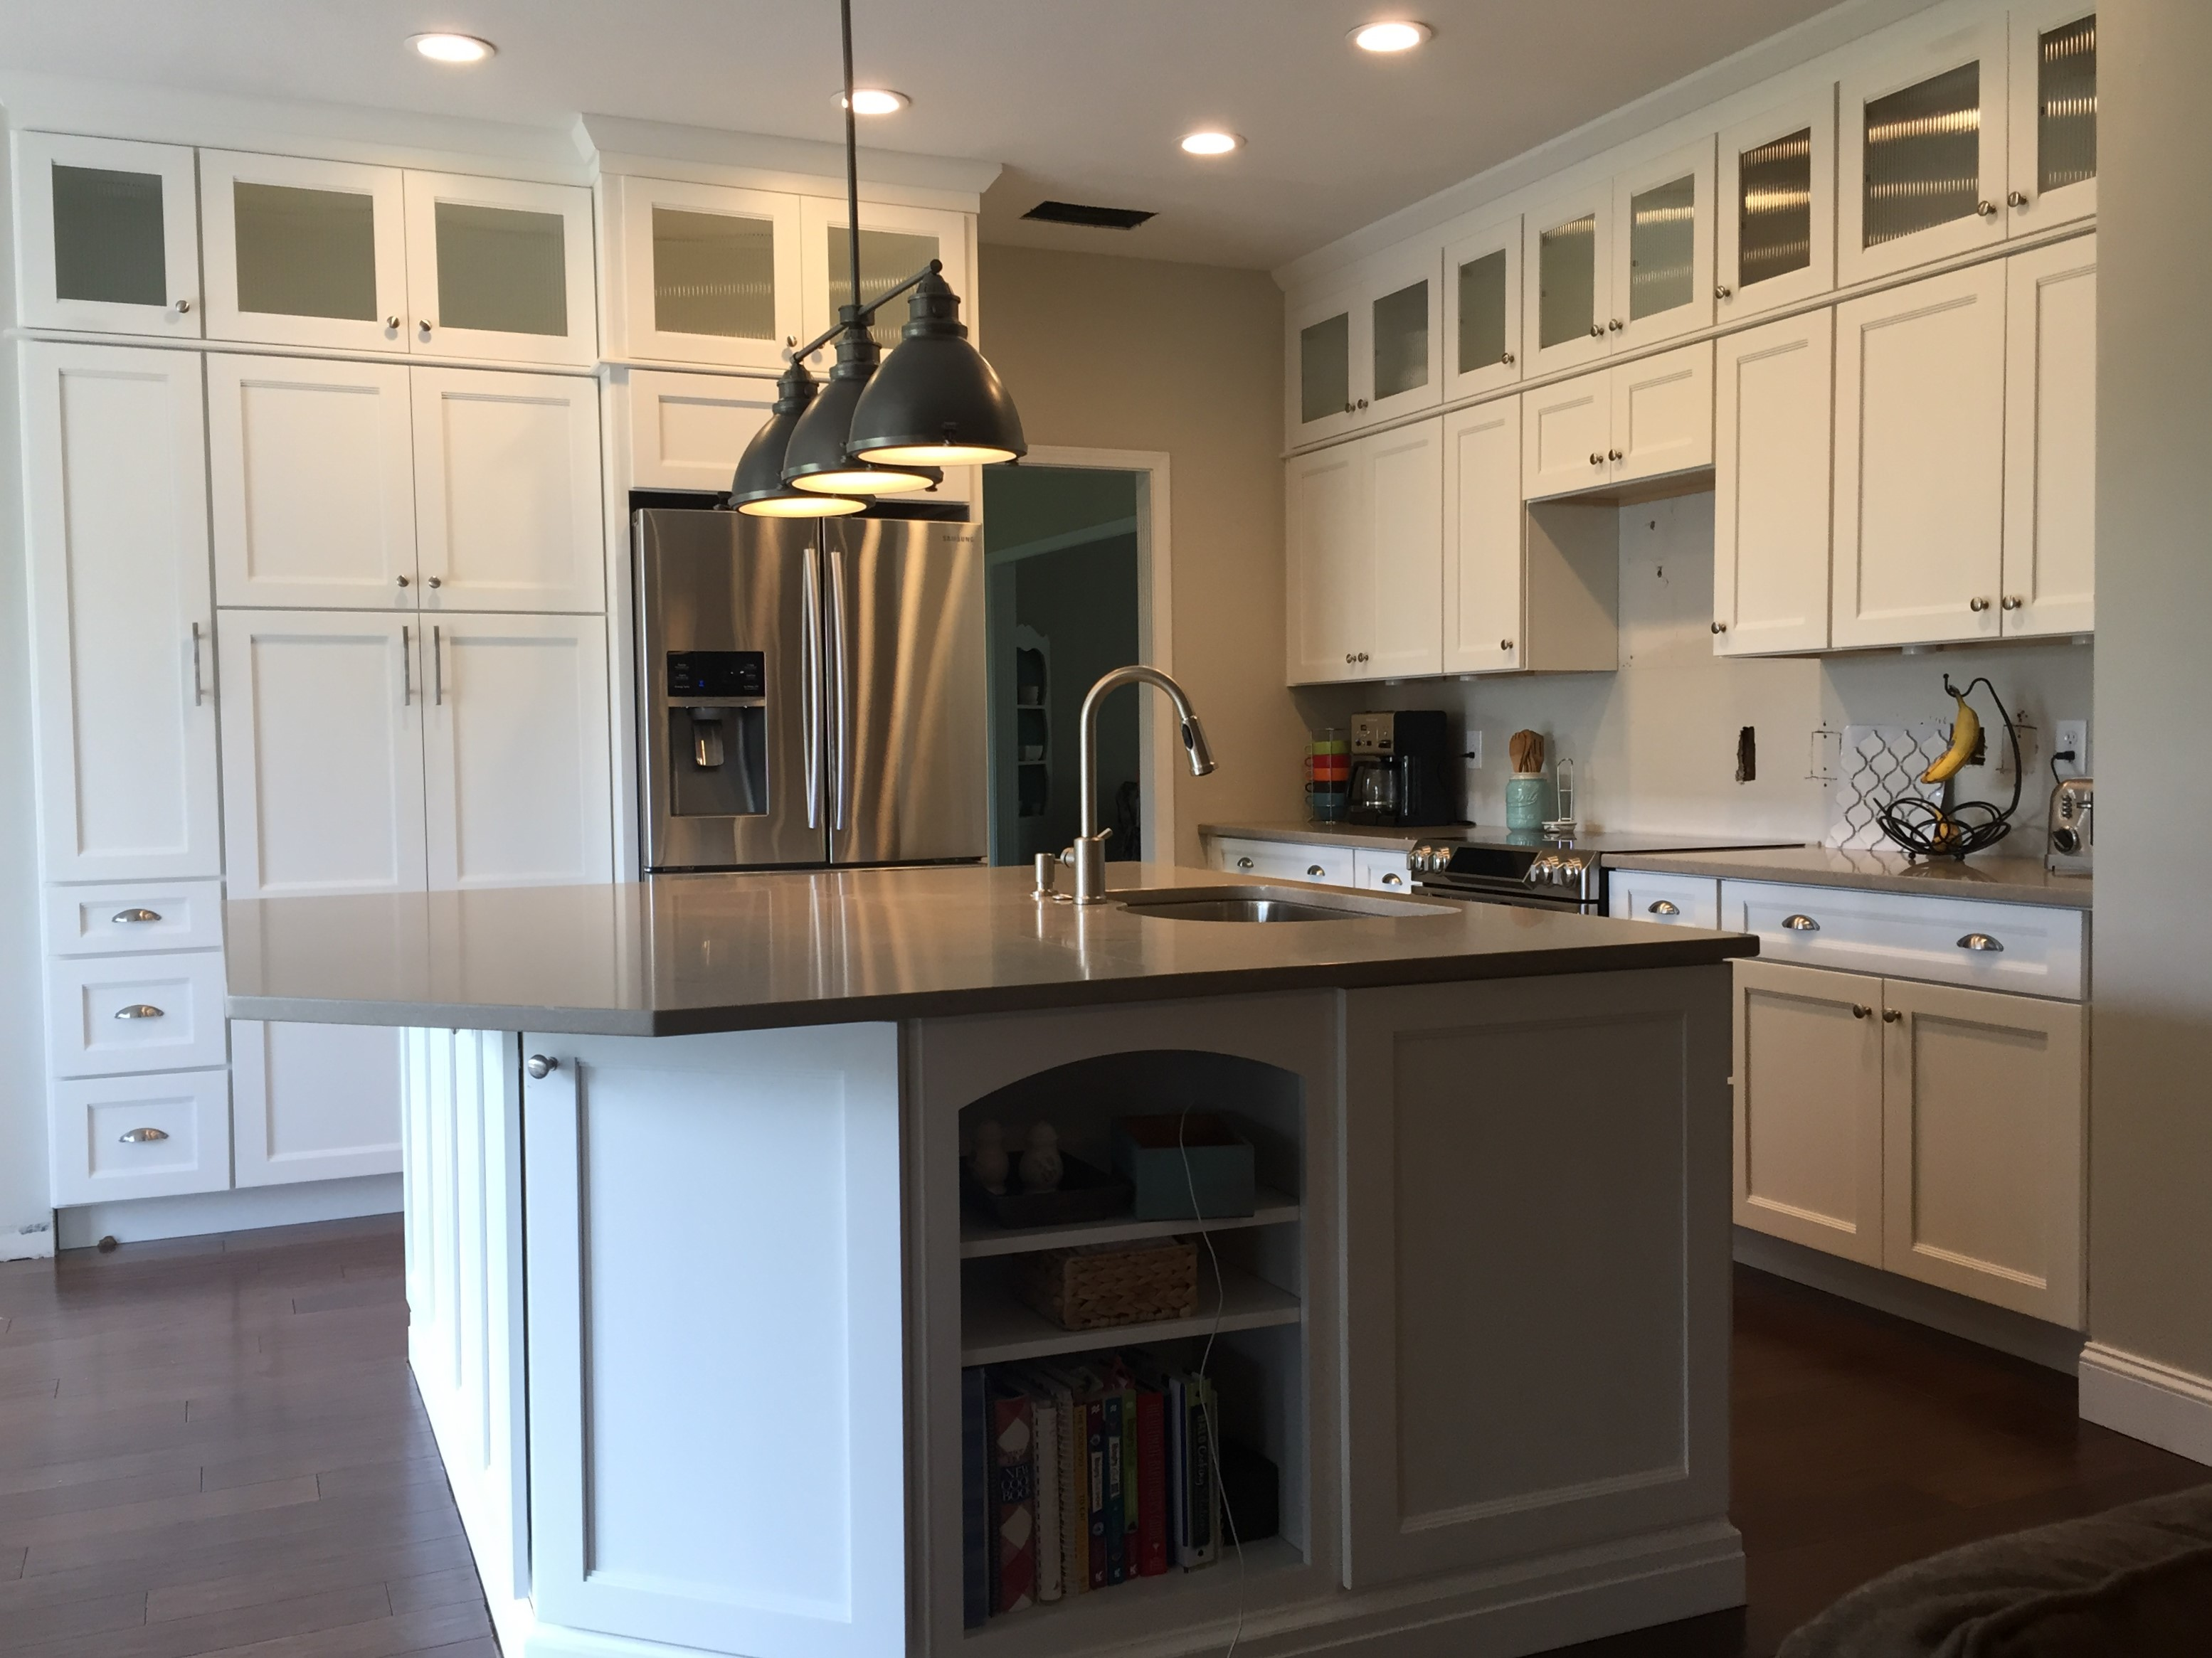 Cabinetry: Marlow Kitchen